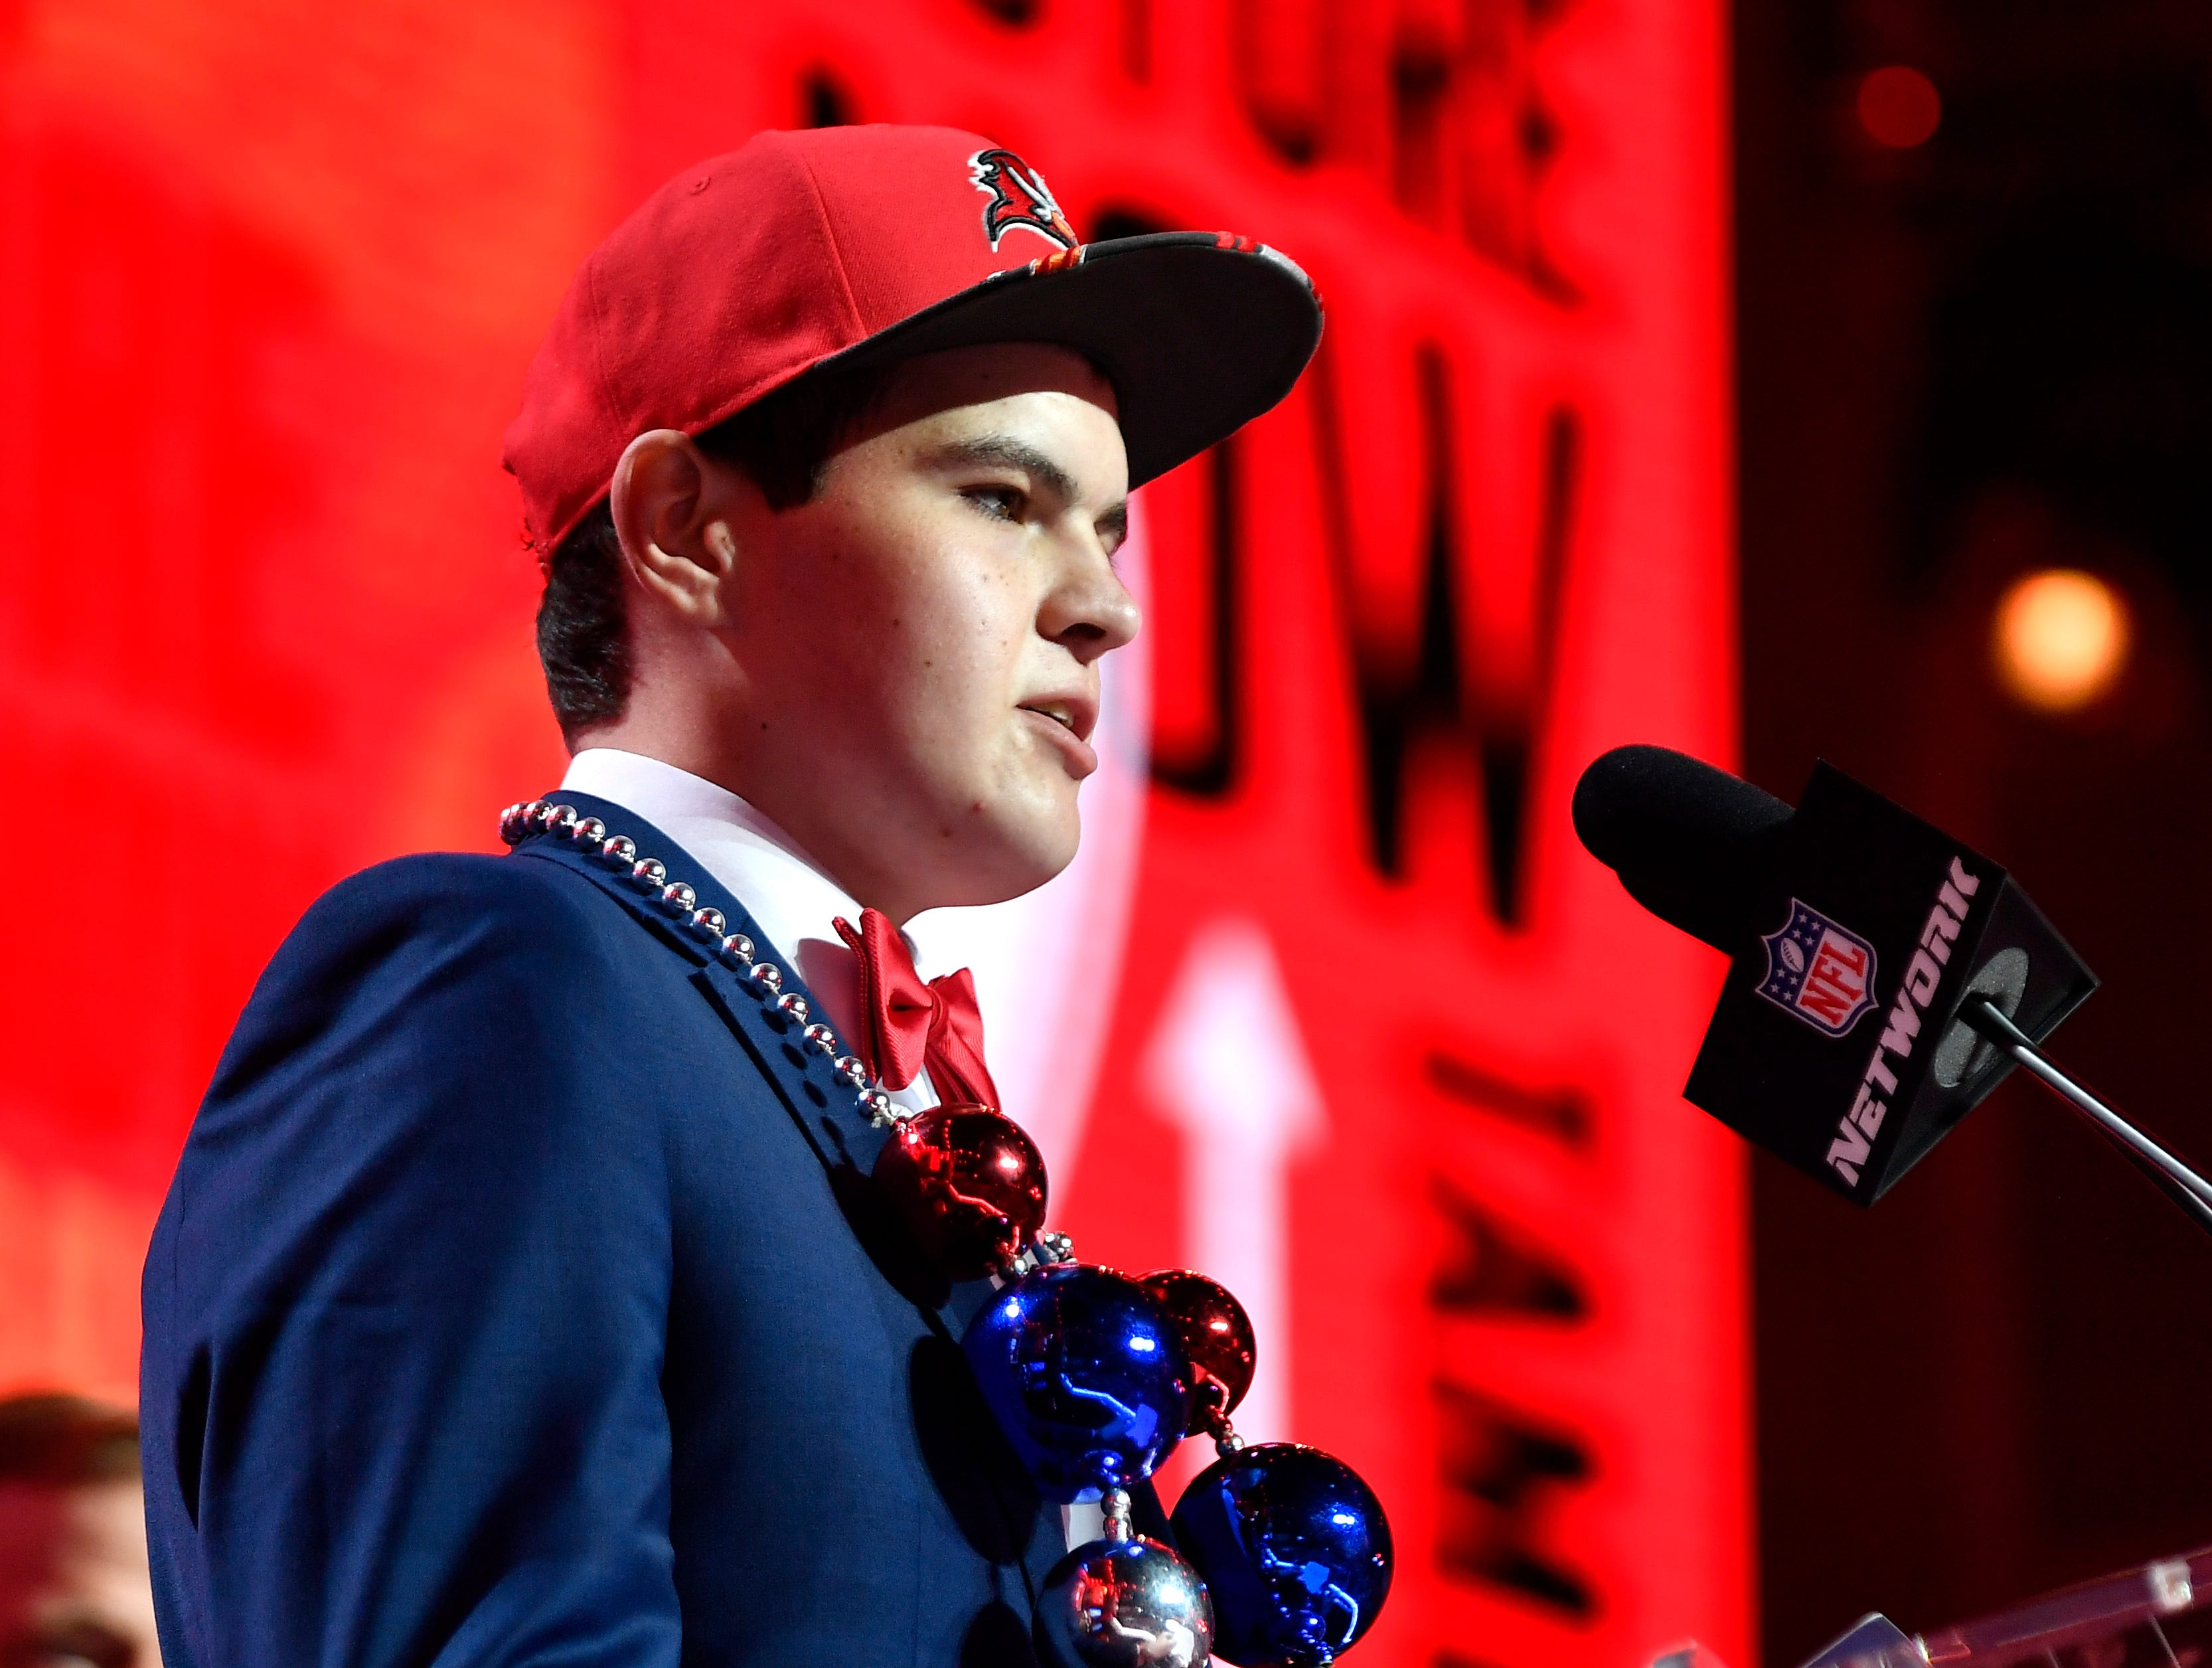 A Make-A-Wish participant reads the Tampa Bay Buccaneers' pick during the first round of the NFL Draft Thursday, April 25, 2019, in Nashville, Tenn.